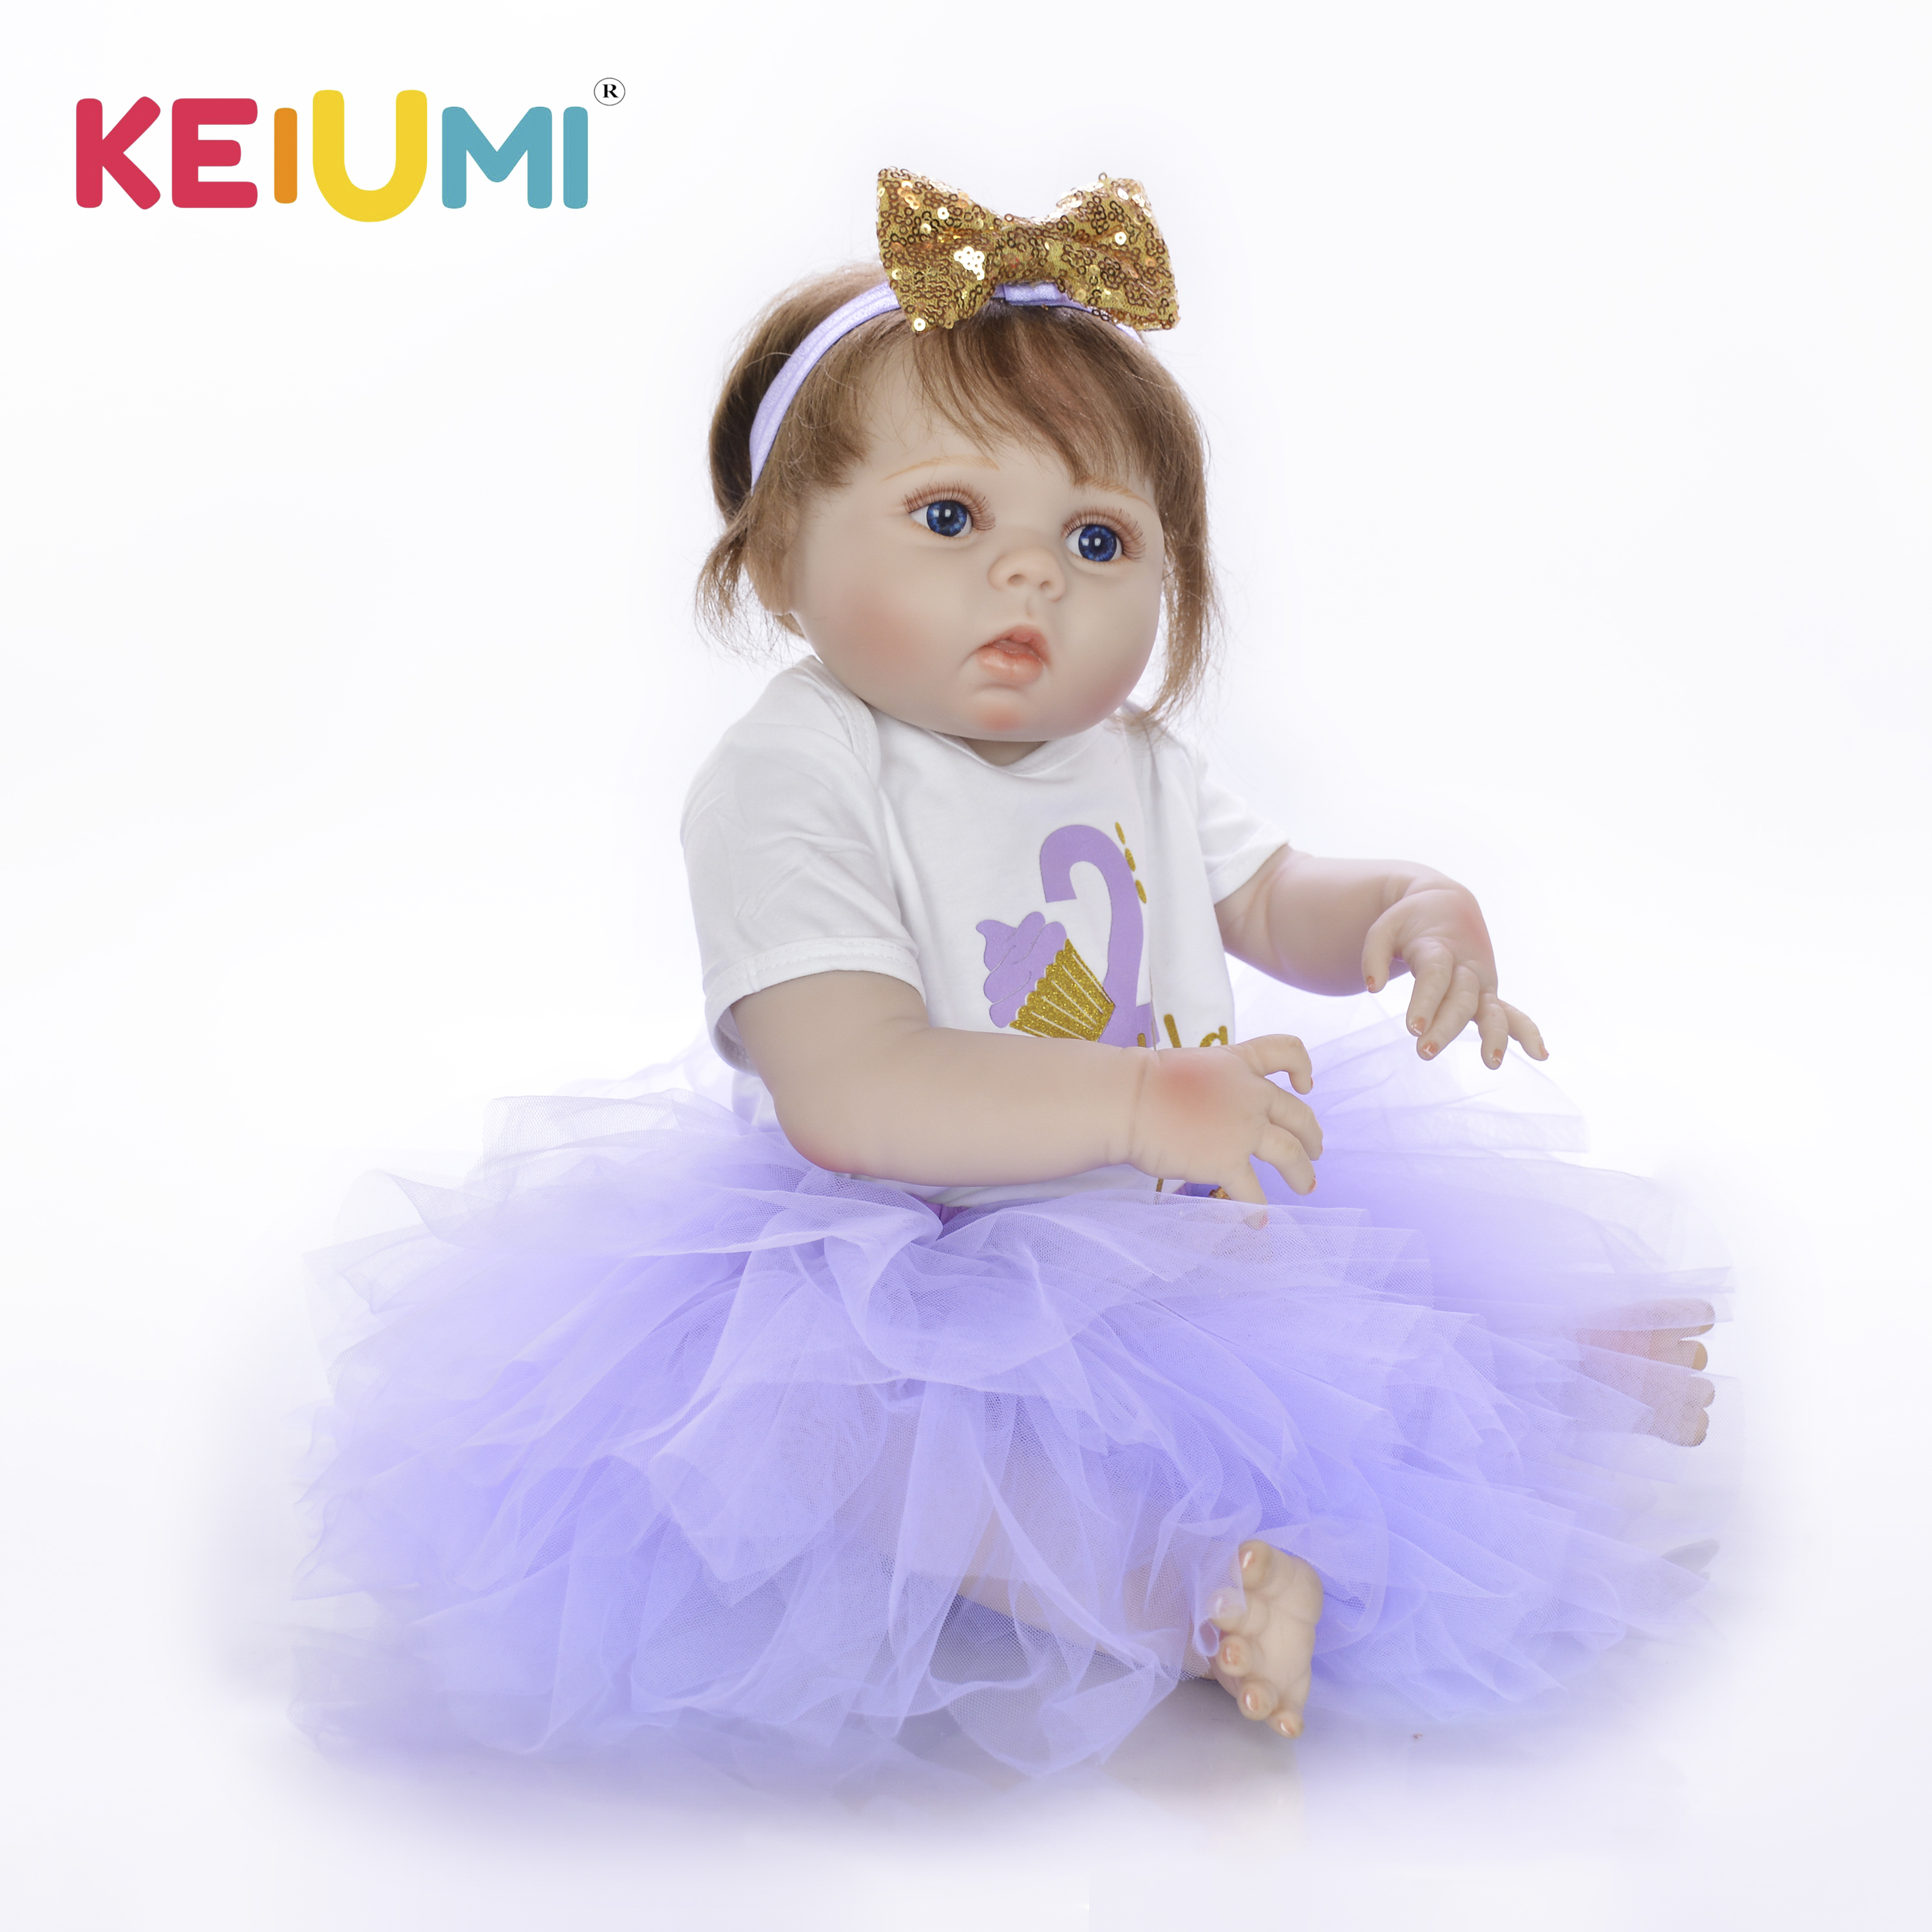 KEIUMI New Style 23 Inch 57 cm Full Body Silicone Vinyl Reborn Baby Dolls Girl Realistic Reborn Dolls For Kids Birthday GiftKEIUMI New Style 23 Inch 57 cm Full Body Silicone Vinyl Reborn Baby Dolls Girl Realistic Reborn Dolls For Kids Birthday Gift